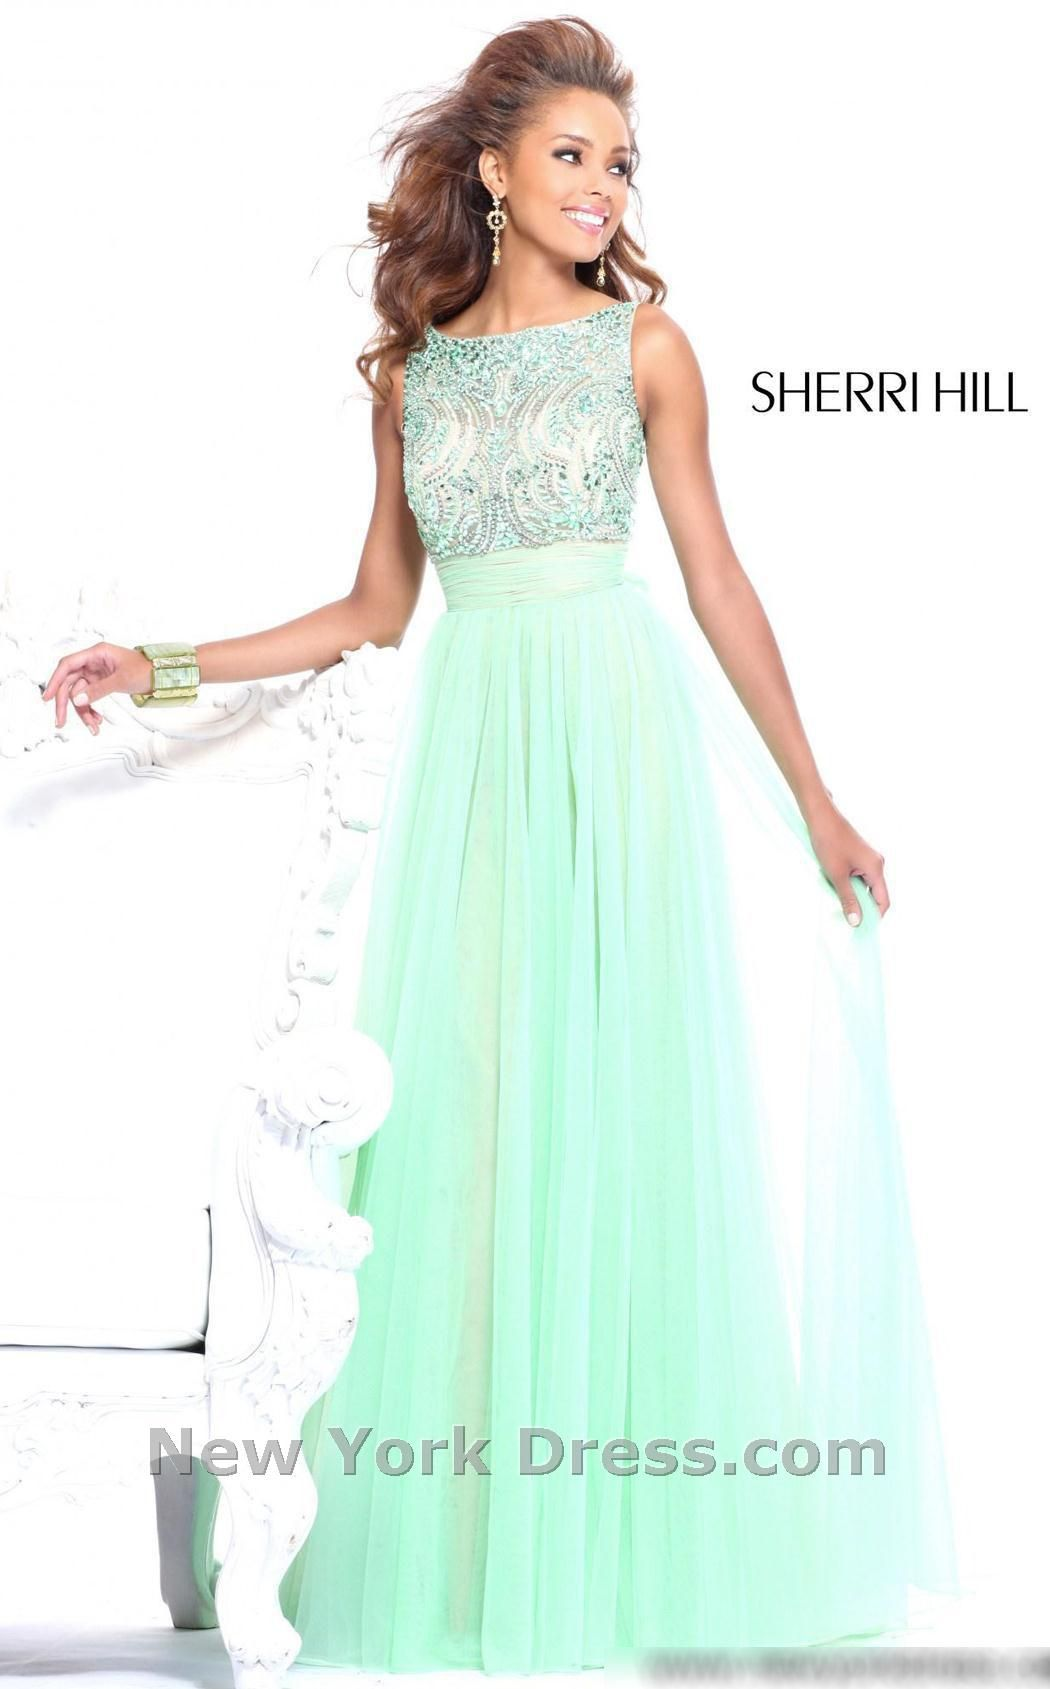 Sherri hill thumbnail beauty pinterest prom homecoming